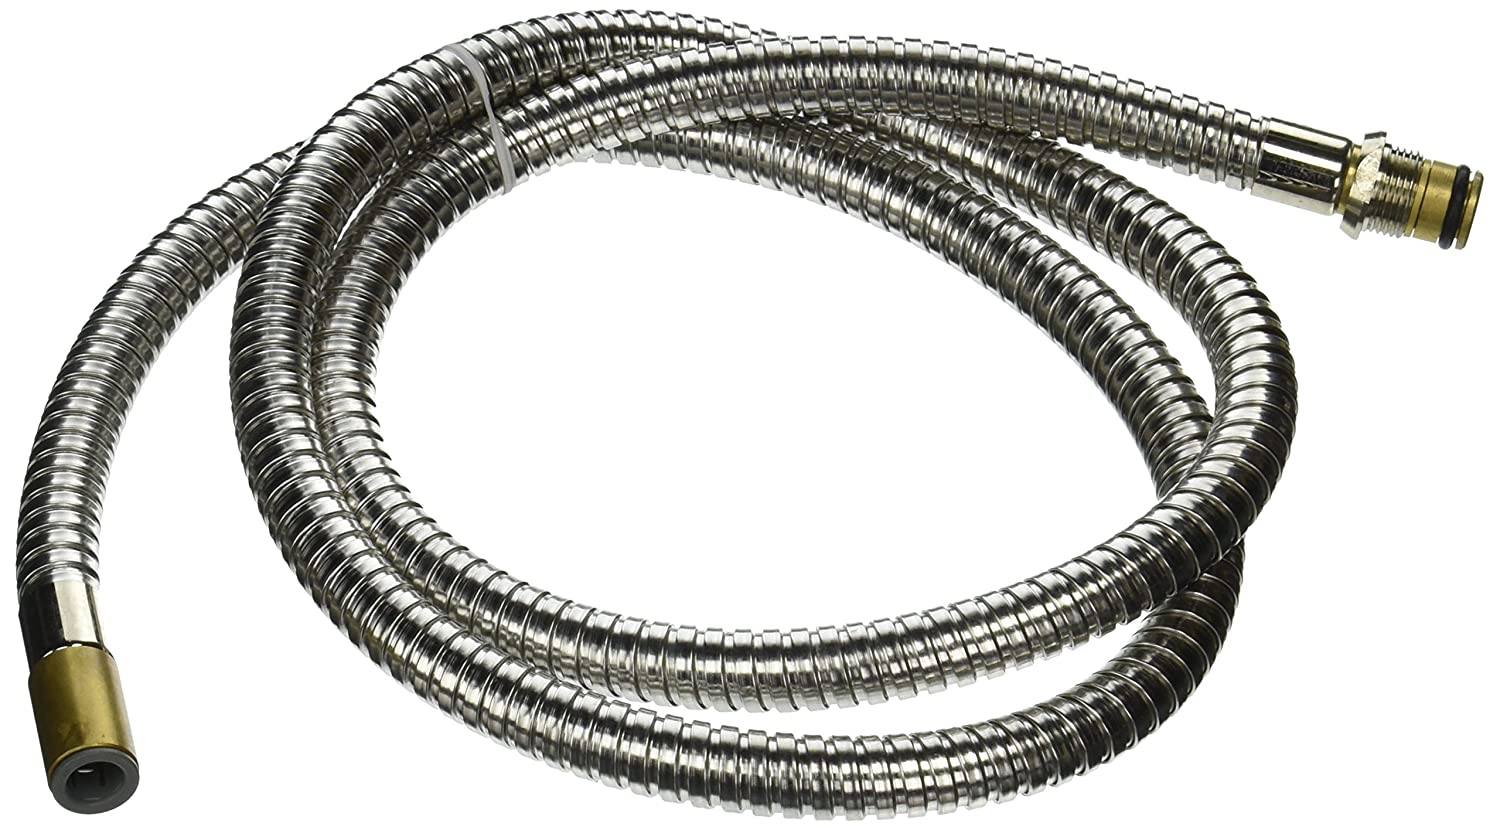 Pfister 9510620 Marielle/Parisa Pull Out Hose Sub Assembly